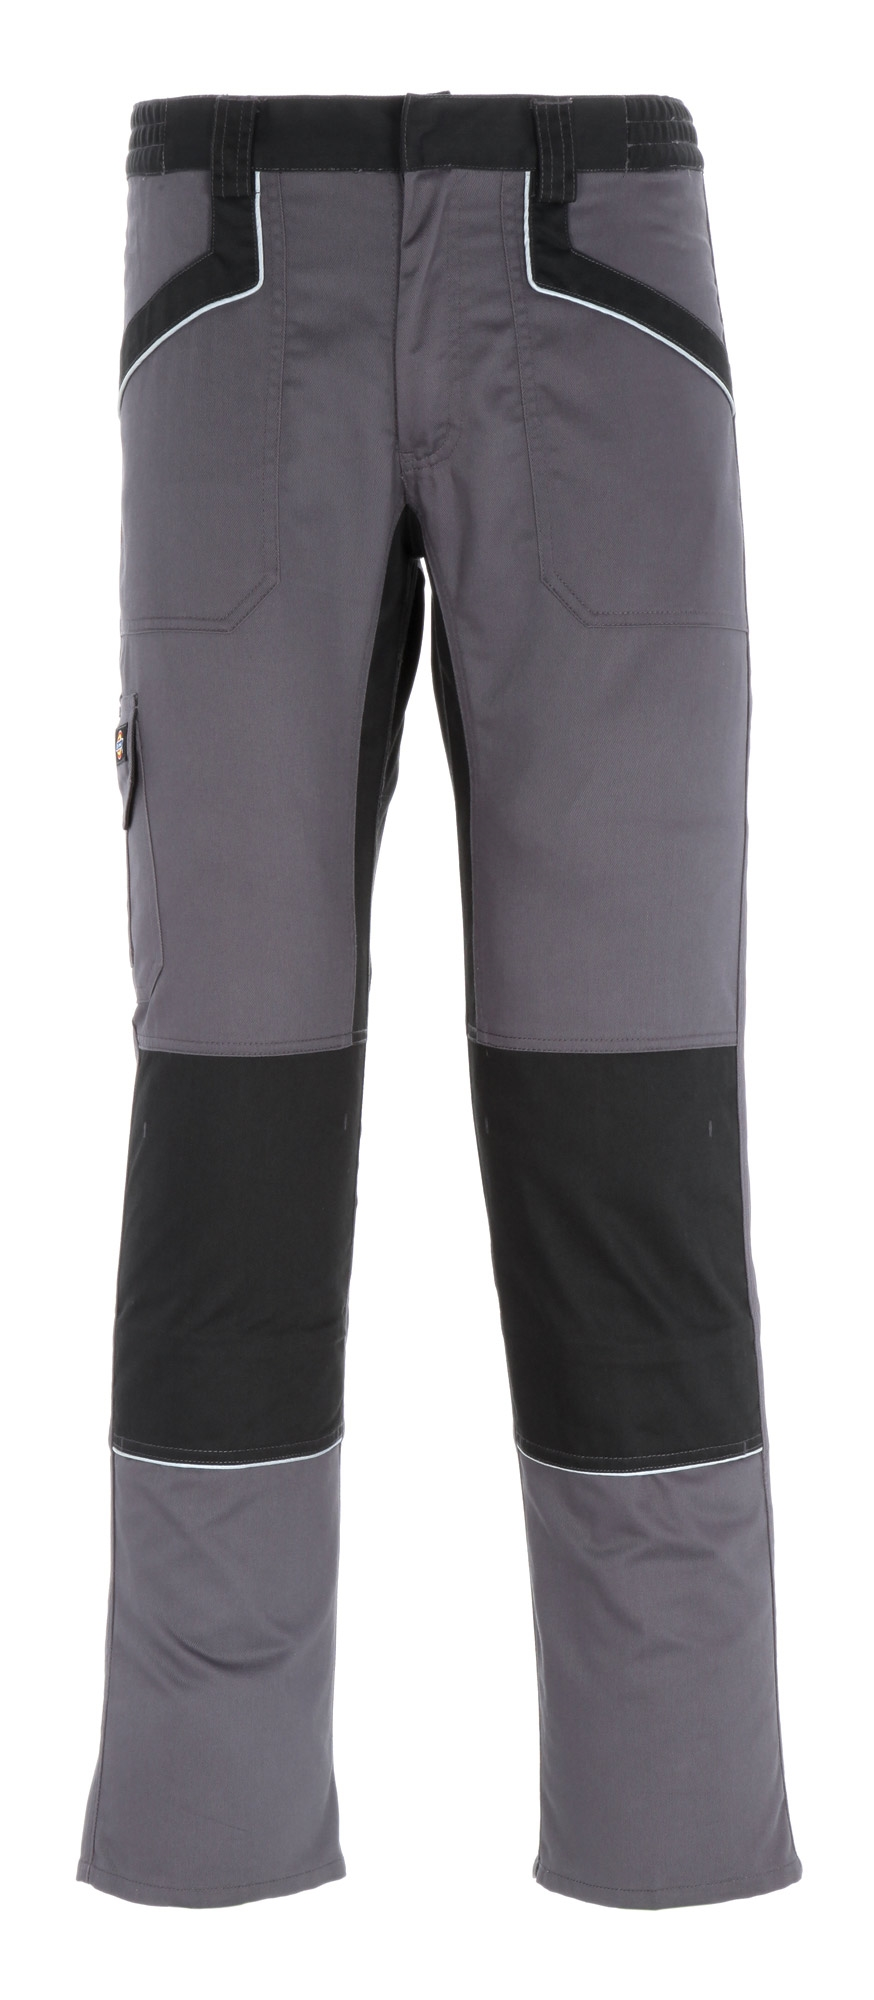 IND260 Trousers Grey/Black 56